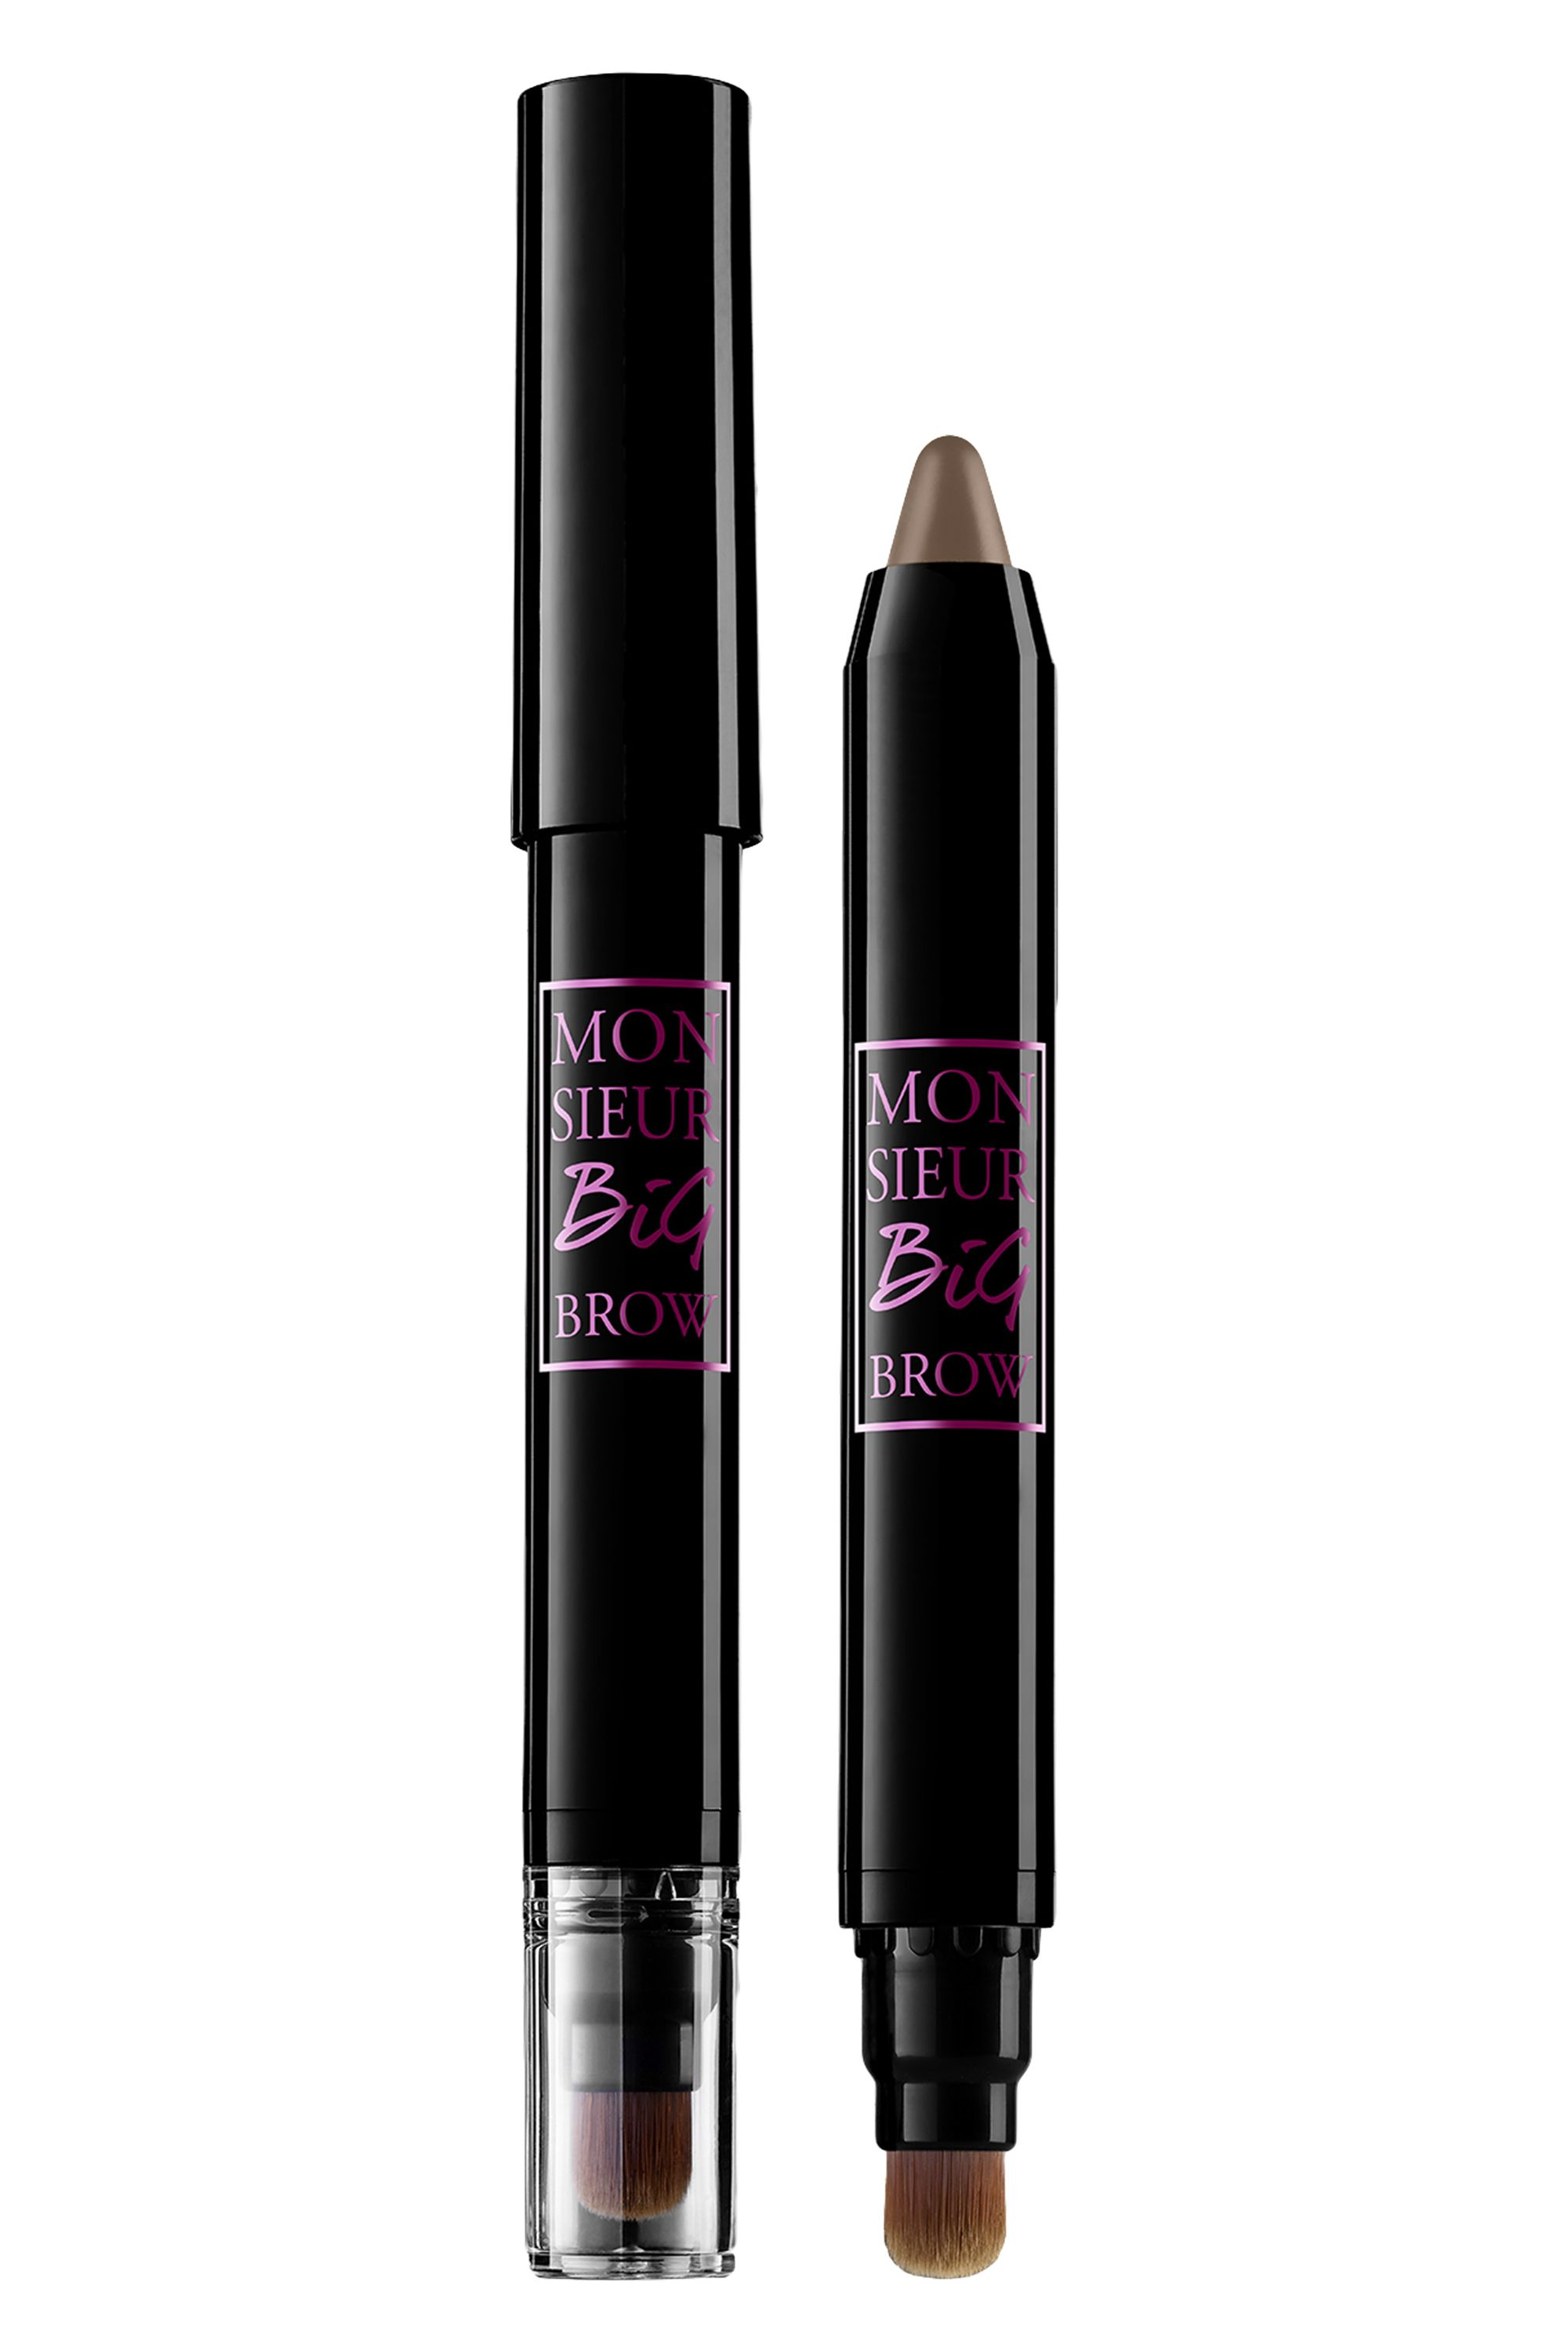 Blissim : Lancôme - Crayon sourcil double-embouts Monsieur Big Brow - 01 Blonde